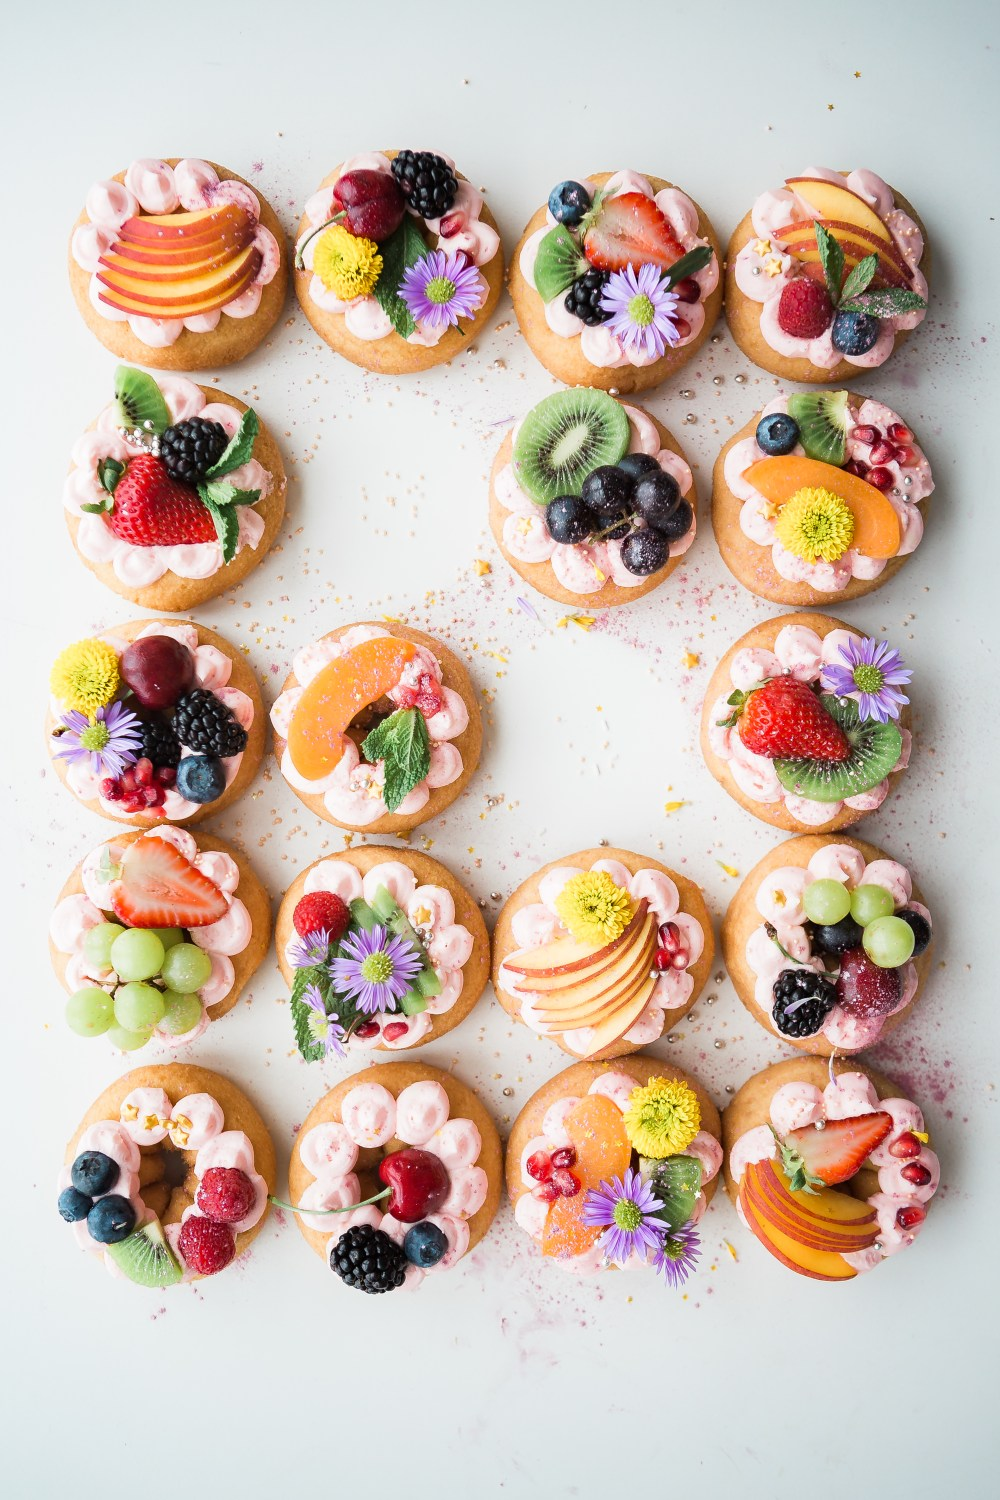 500 pastry pictures hd